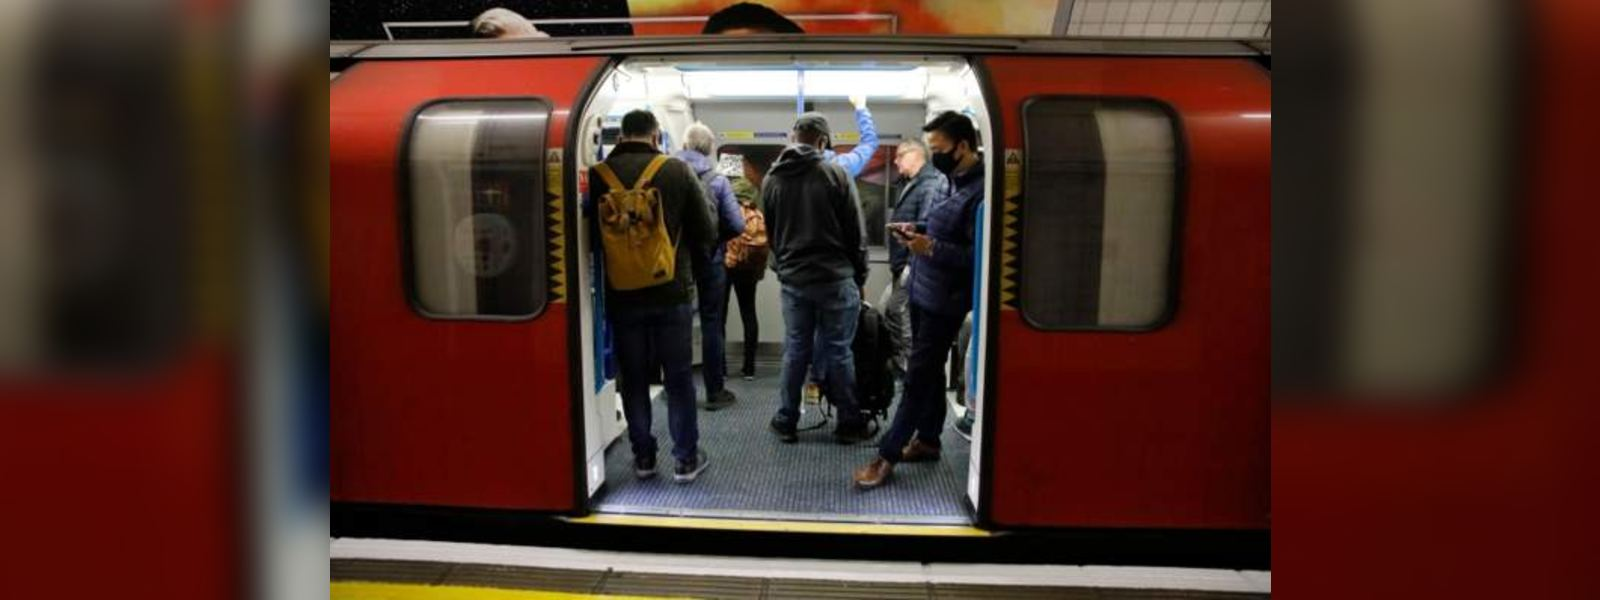 Number of passengers using the London Underground Transport increases